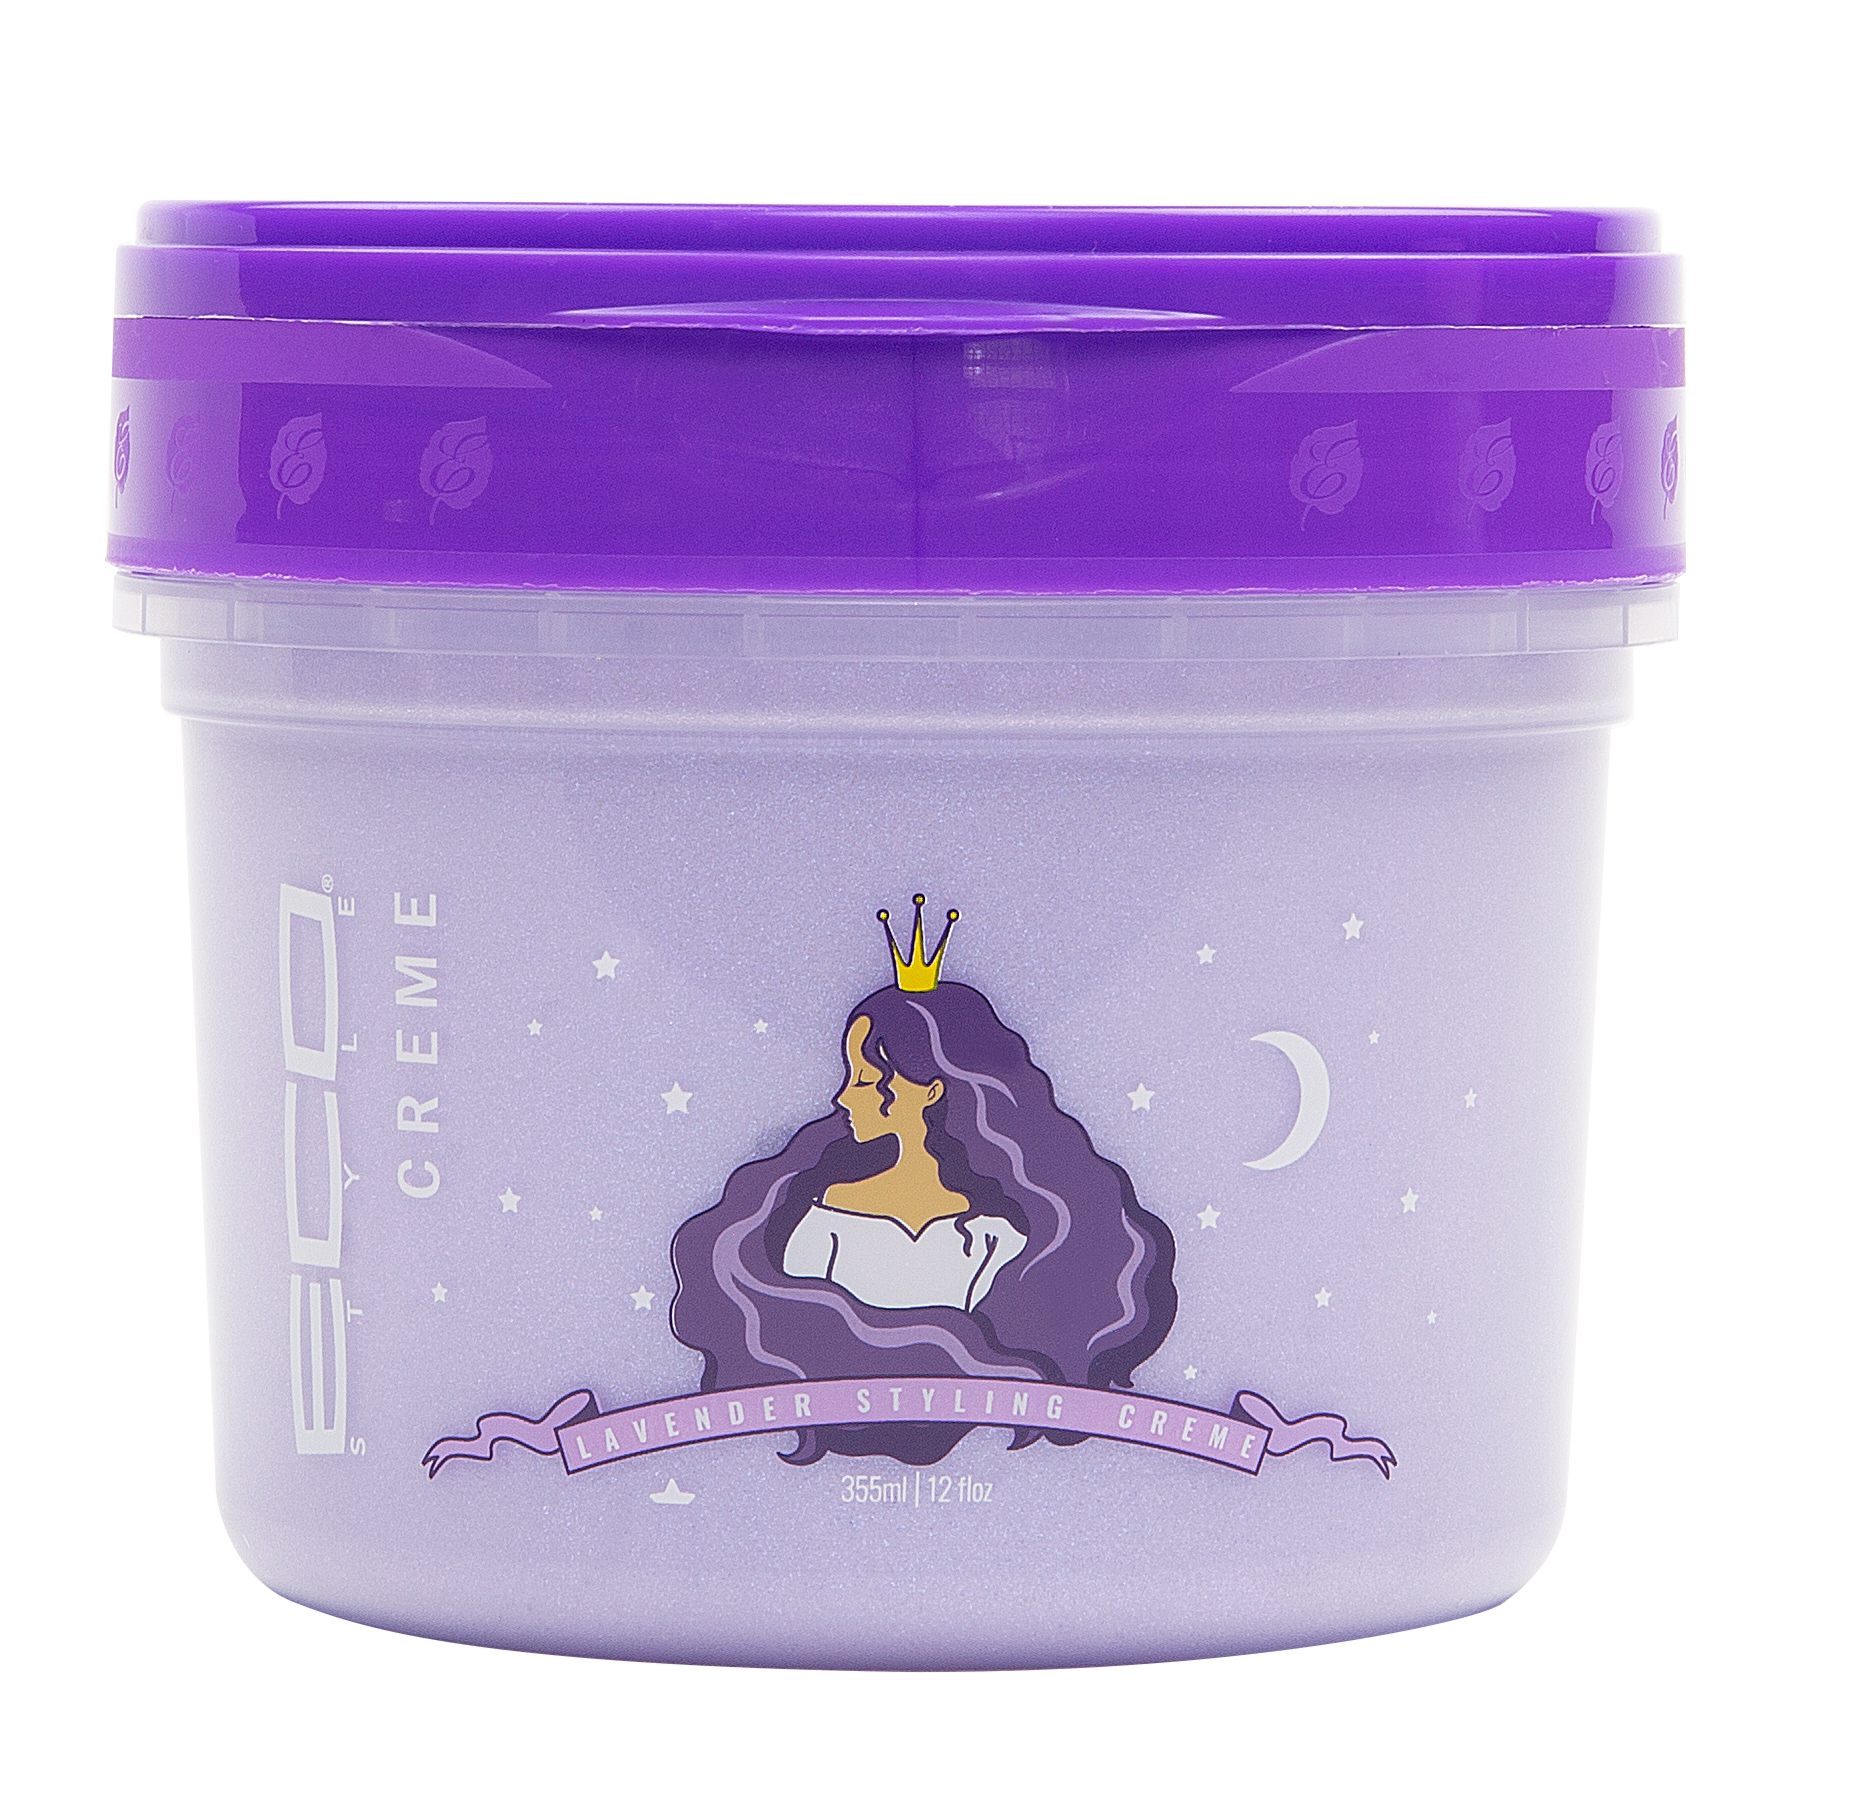 Eco Style Princess Styling Creme.png